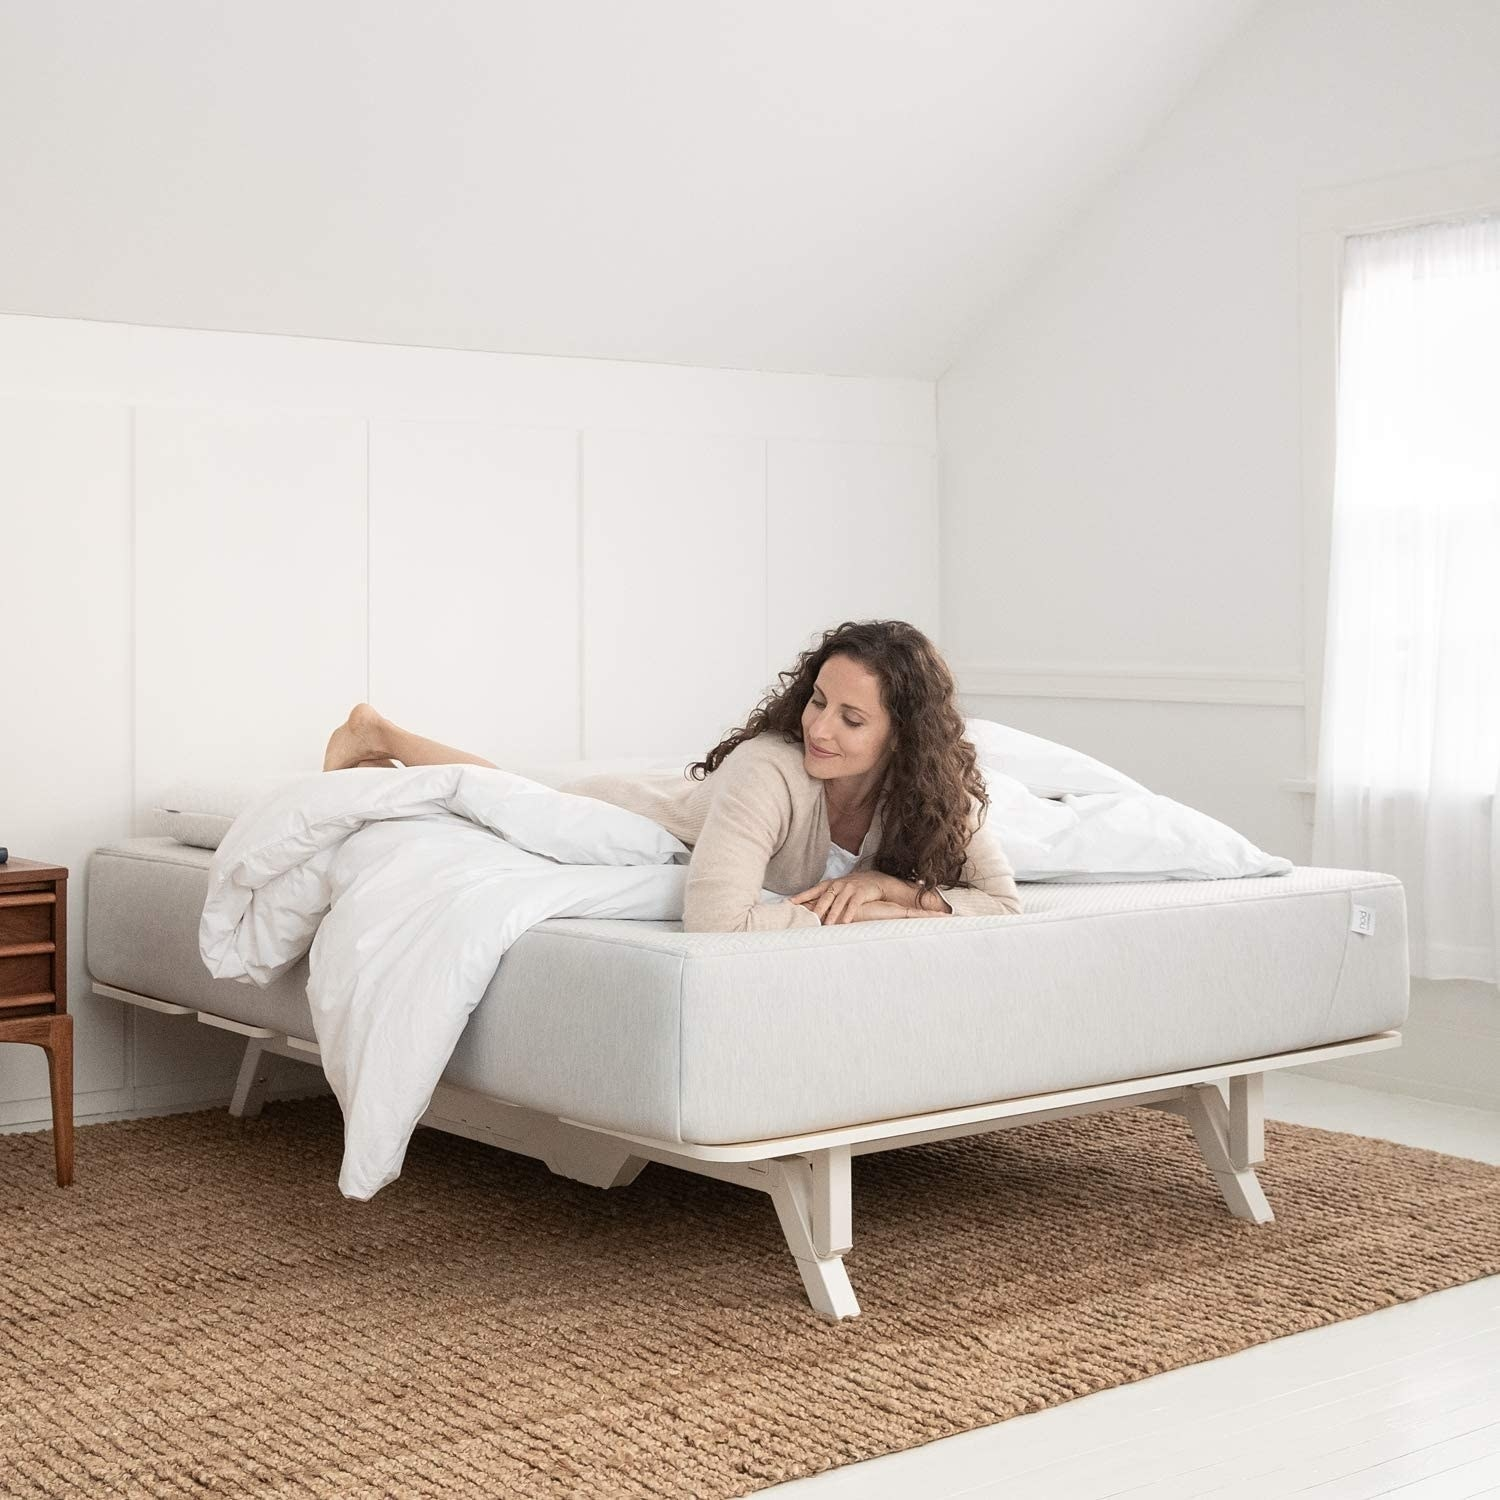 model lounges on Tuft & Needle white adaptive foam mattress on a bed